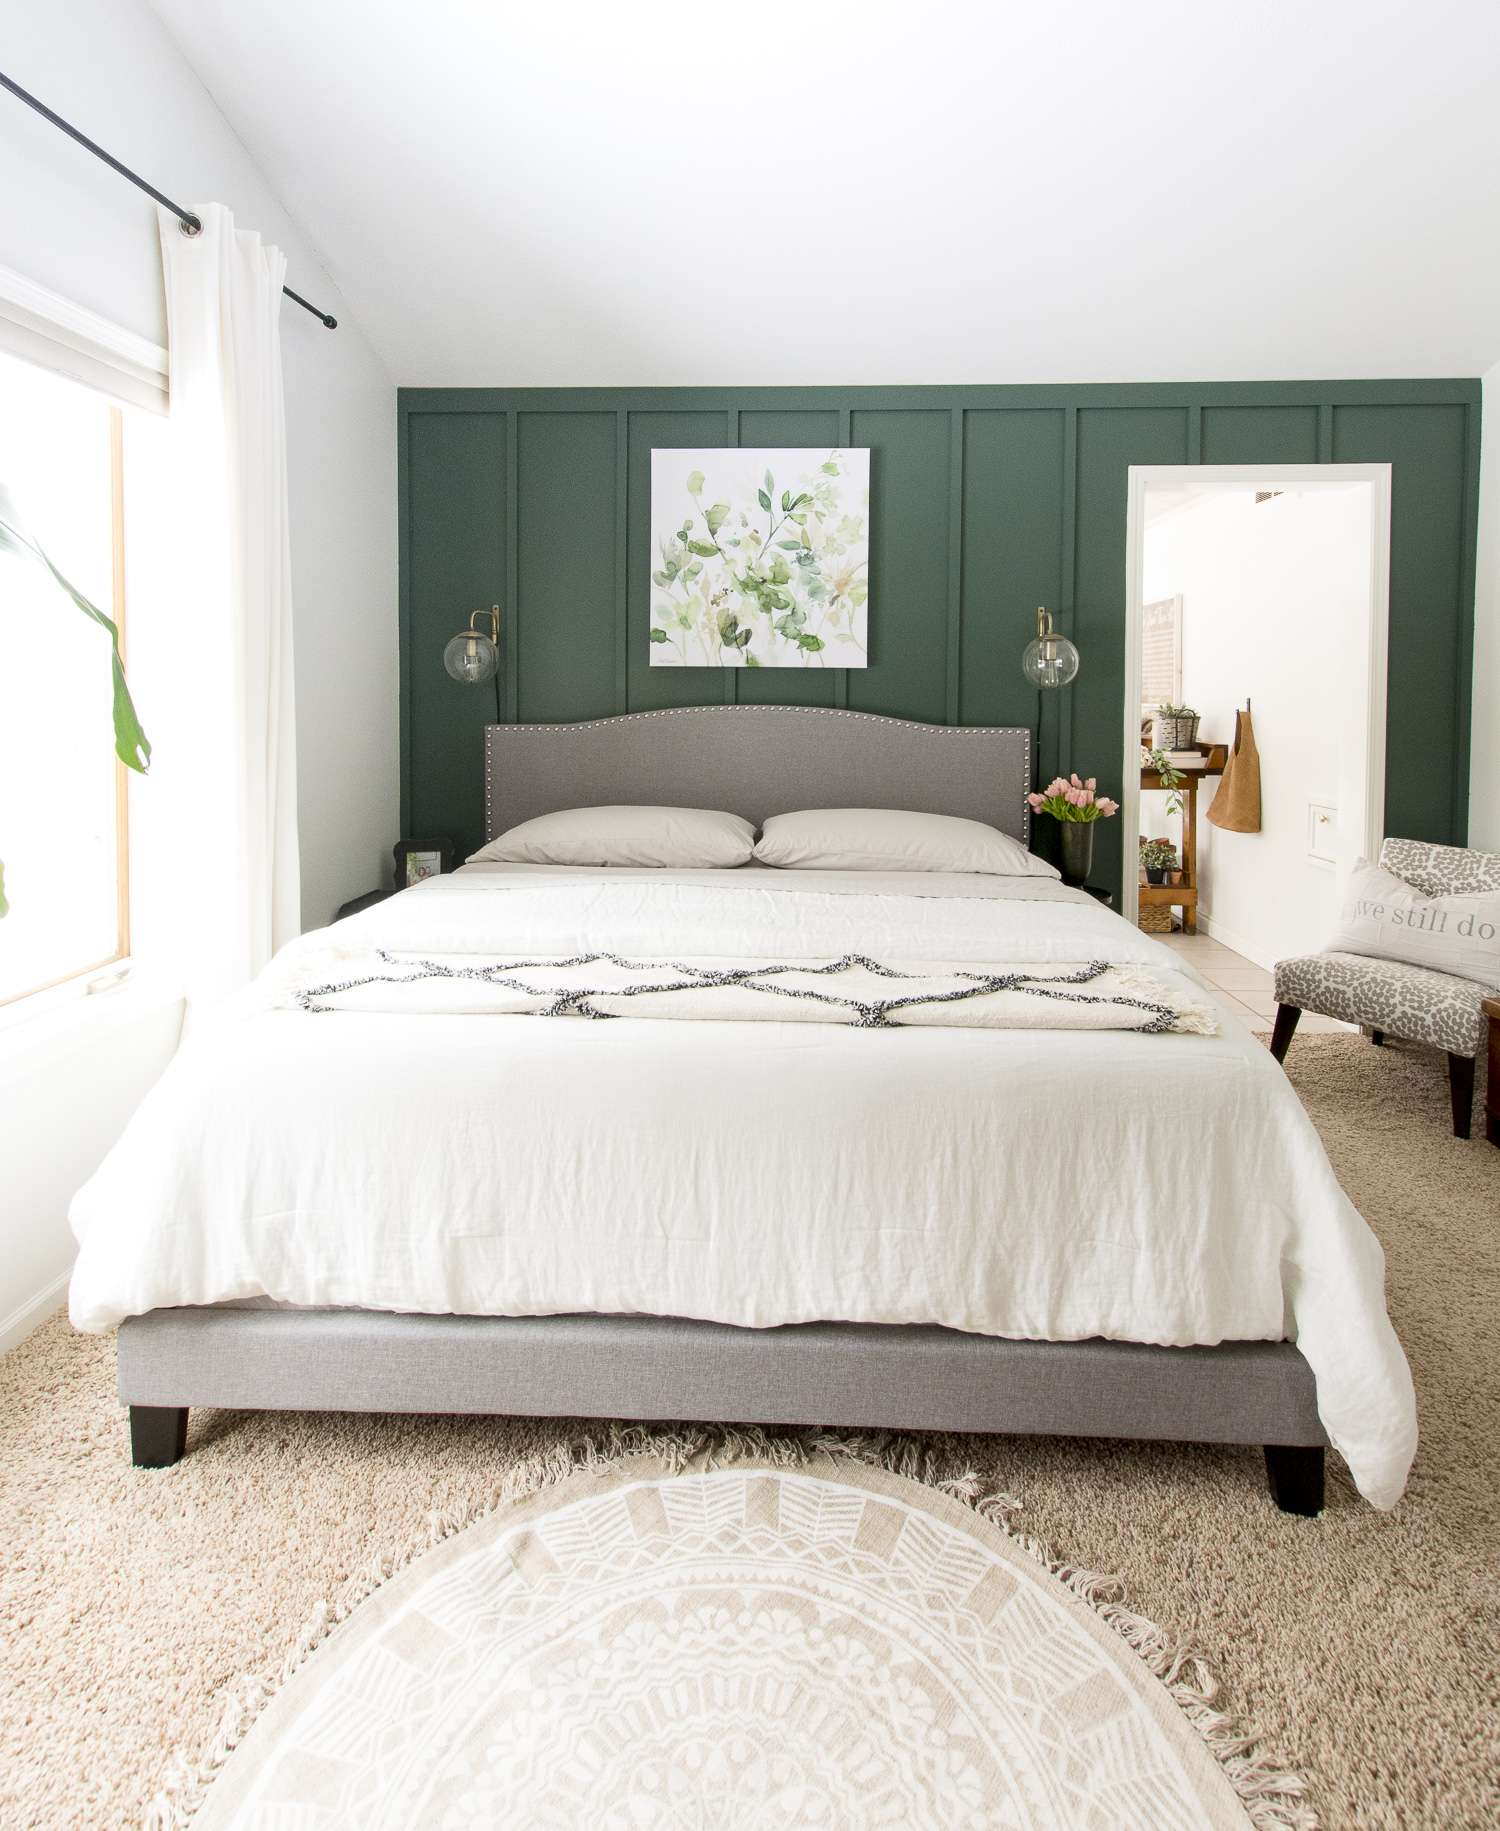 Are you looking for cozy bedroom ideas for spring? I'm sharing how to make your bedroom cozy even as we head into the spring season. #fromhousetohaven #springbedroomideas #cozybedroomideas